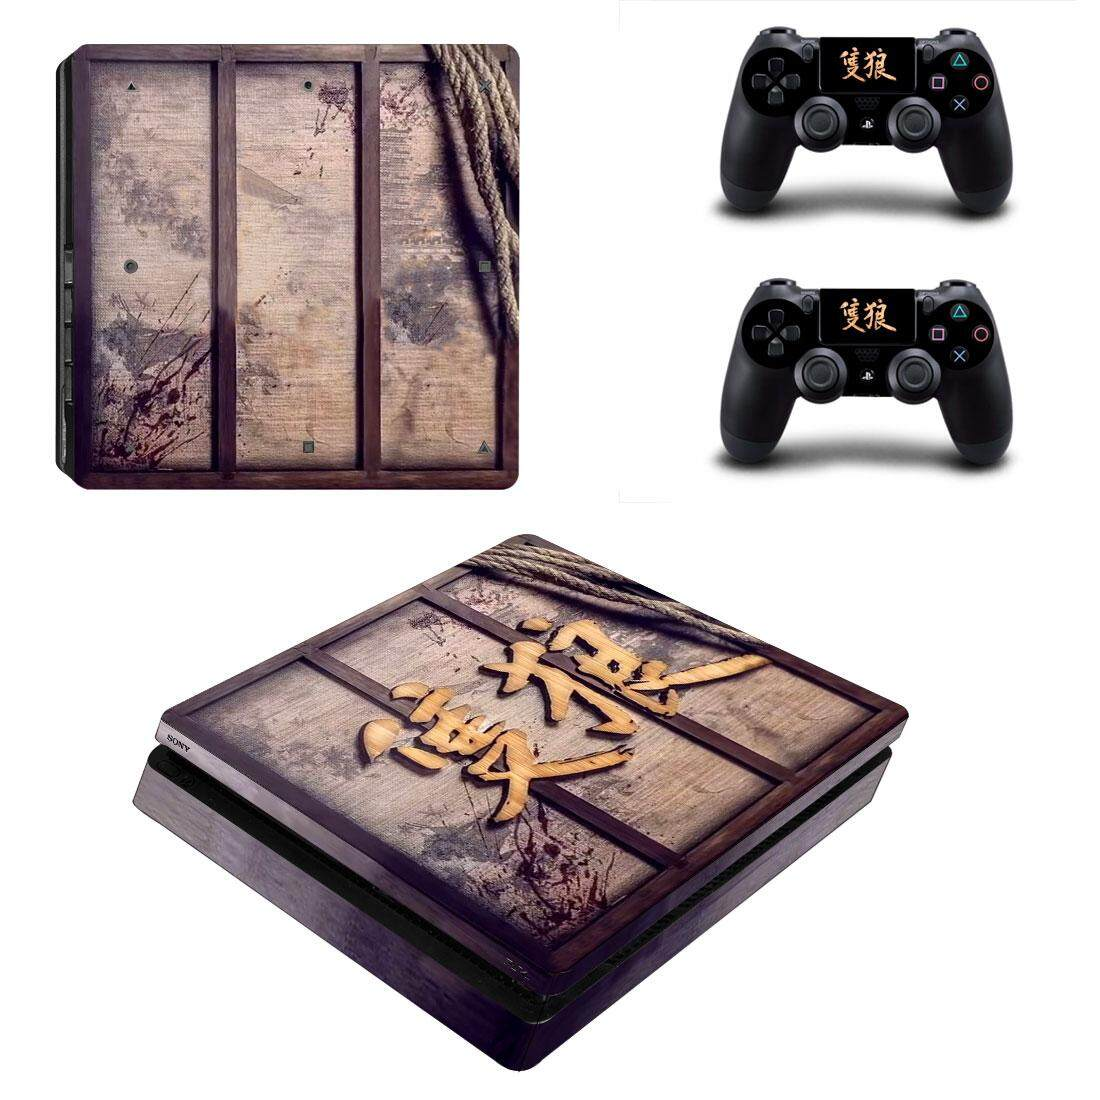 SEKIRO Style Skin Sticker for PS4 Slim Console And Controllers Decal Vinyl  Skins Cover Game Accessories YSP4S-3452